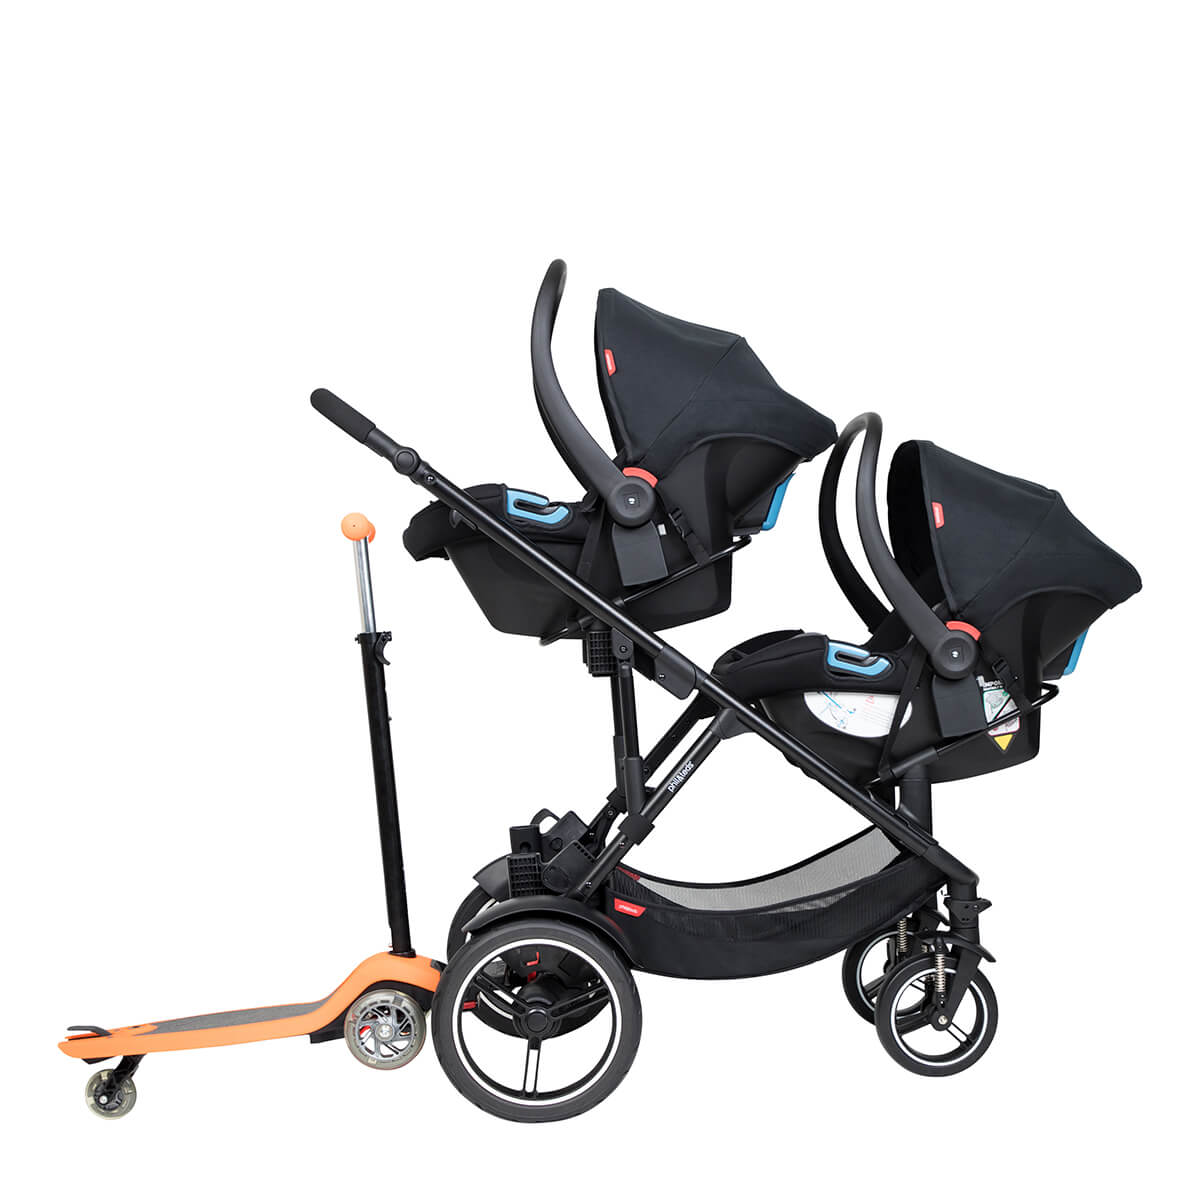 https://cdn.accentuate.io/4417246363682/19438665367730/philteds-voyager-buggy-with-double-travel-systems-and-freerider-stroller-board-in-the-rear-v1626482970057.jpg?1200x1200